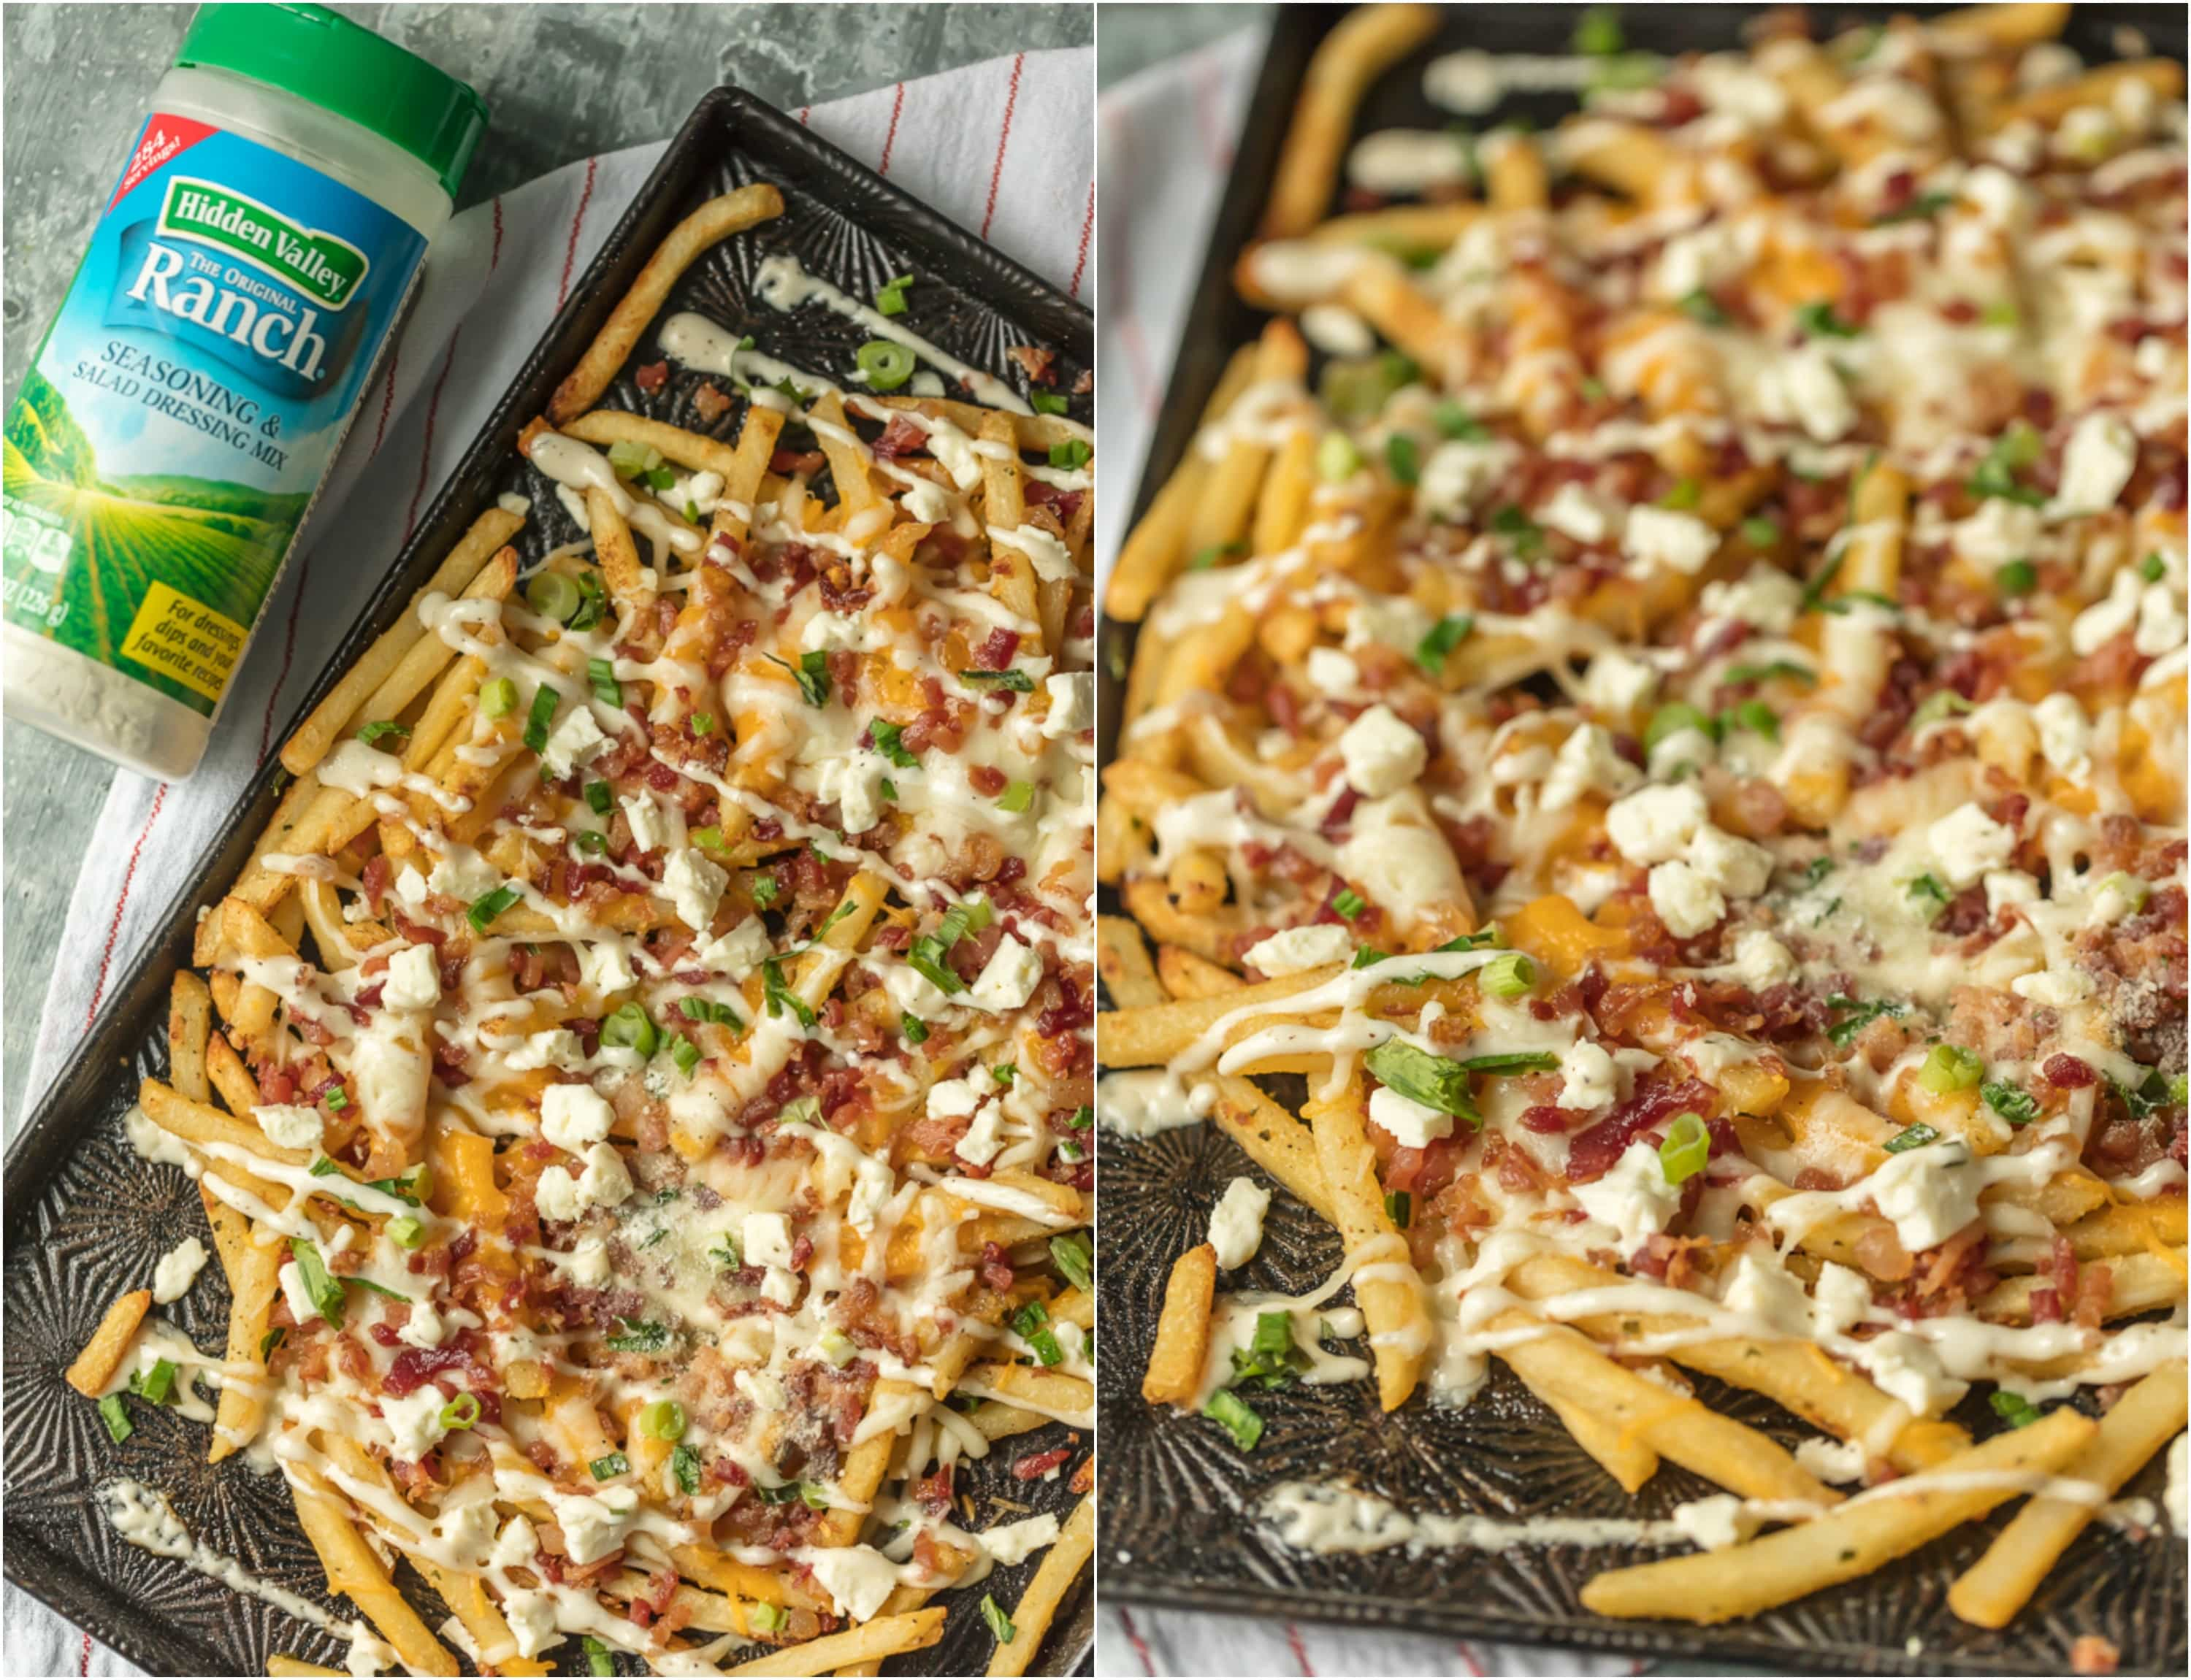 Bacon Cheese Fries with Ranch are my go-to party food.This Cheese Fries Recipeis sure to make game day easy and delicious! This easy and fun appetizer takes crispy fries and tops them with ranch seasoning, bacon, cheddar, mozzarella, and feta. 3 Cheese Fries with Bacon and Ranch for the WIN!